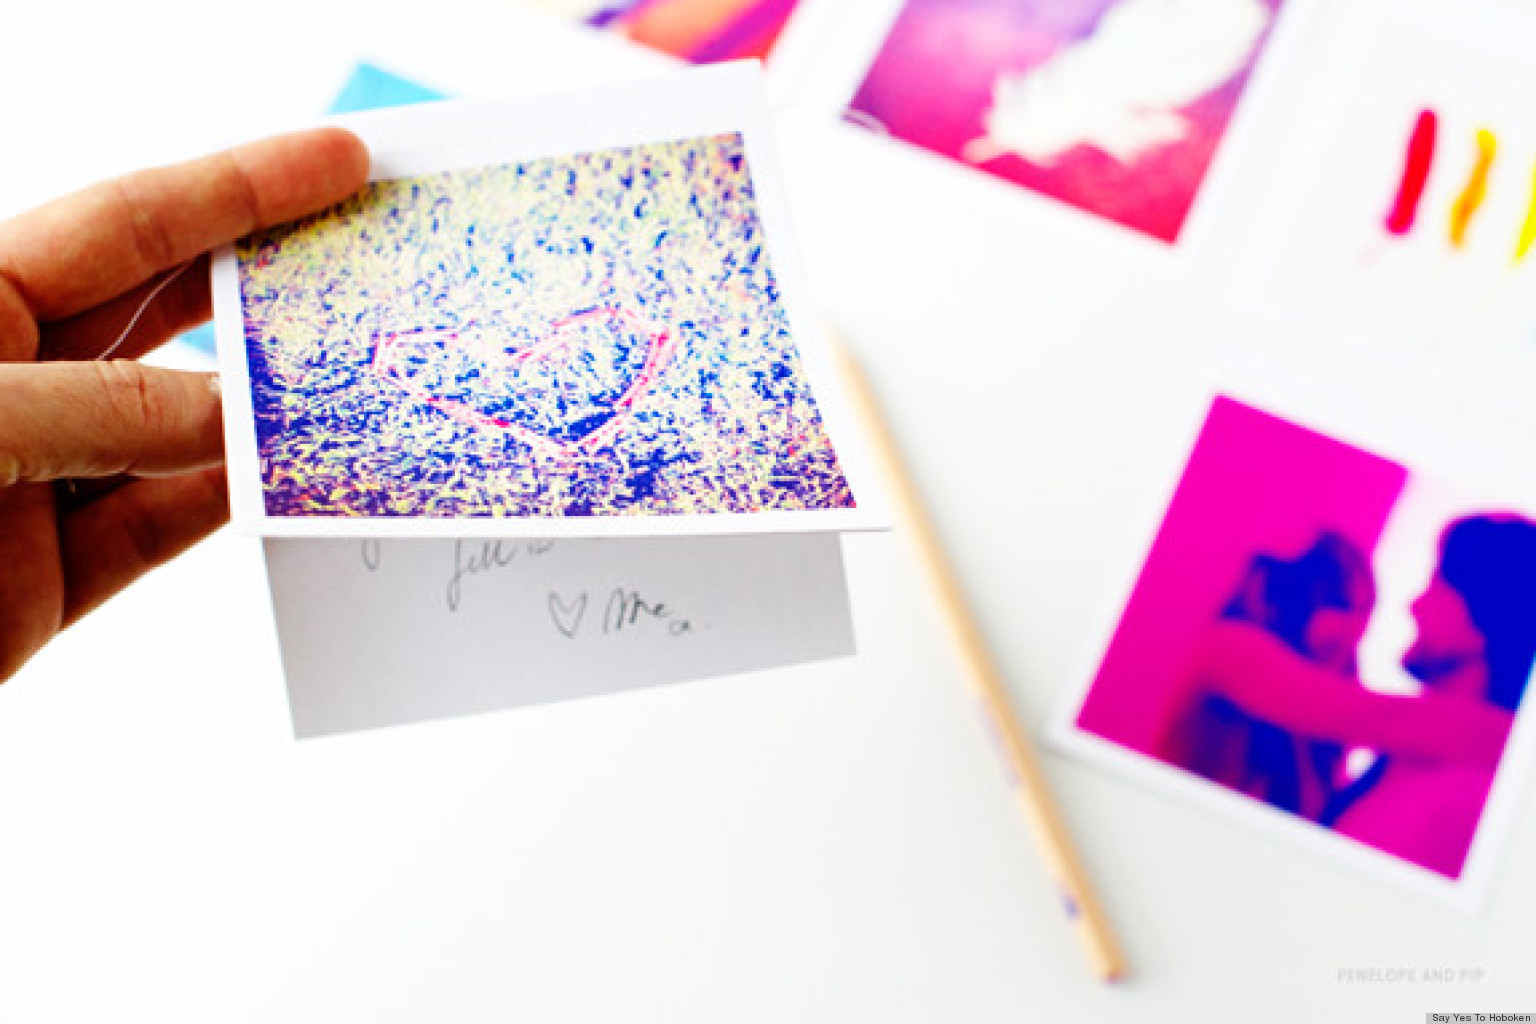 Homemade Gift Ideas: An Easy Way To Turn Instagram Photos Into Cards ...